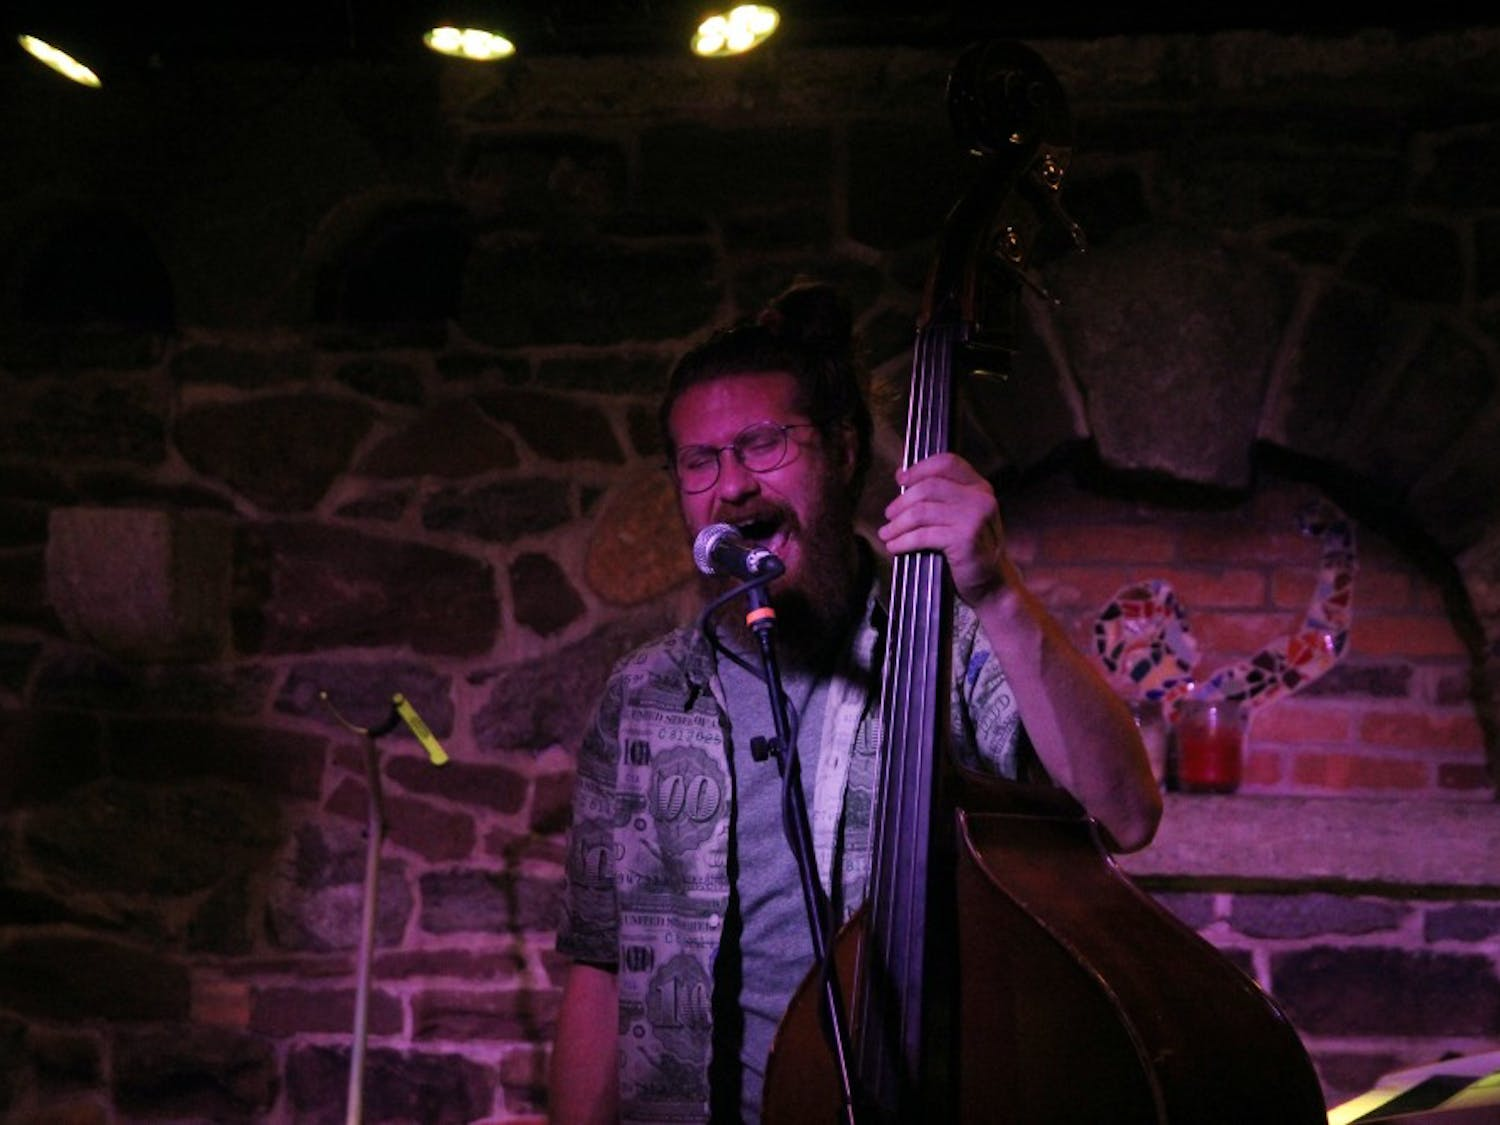 Bassist and singer Casey Abrams performed songs and coversnew and old at Babeville's The9th Ward on Saturday night.